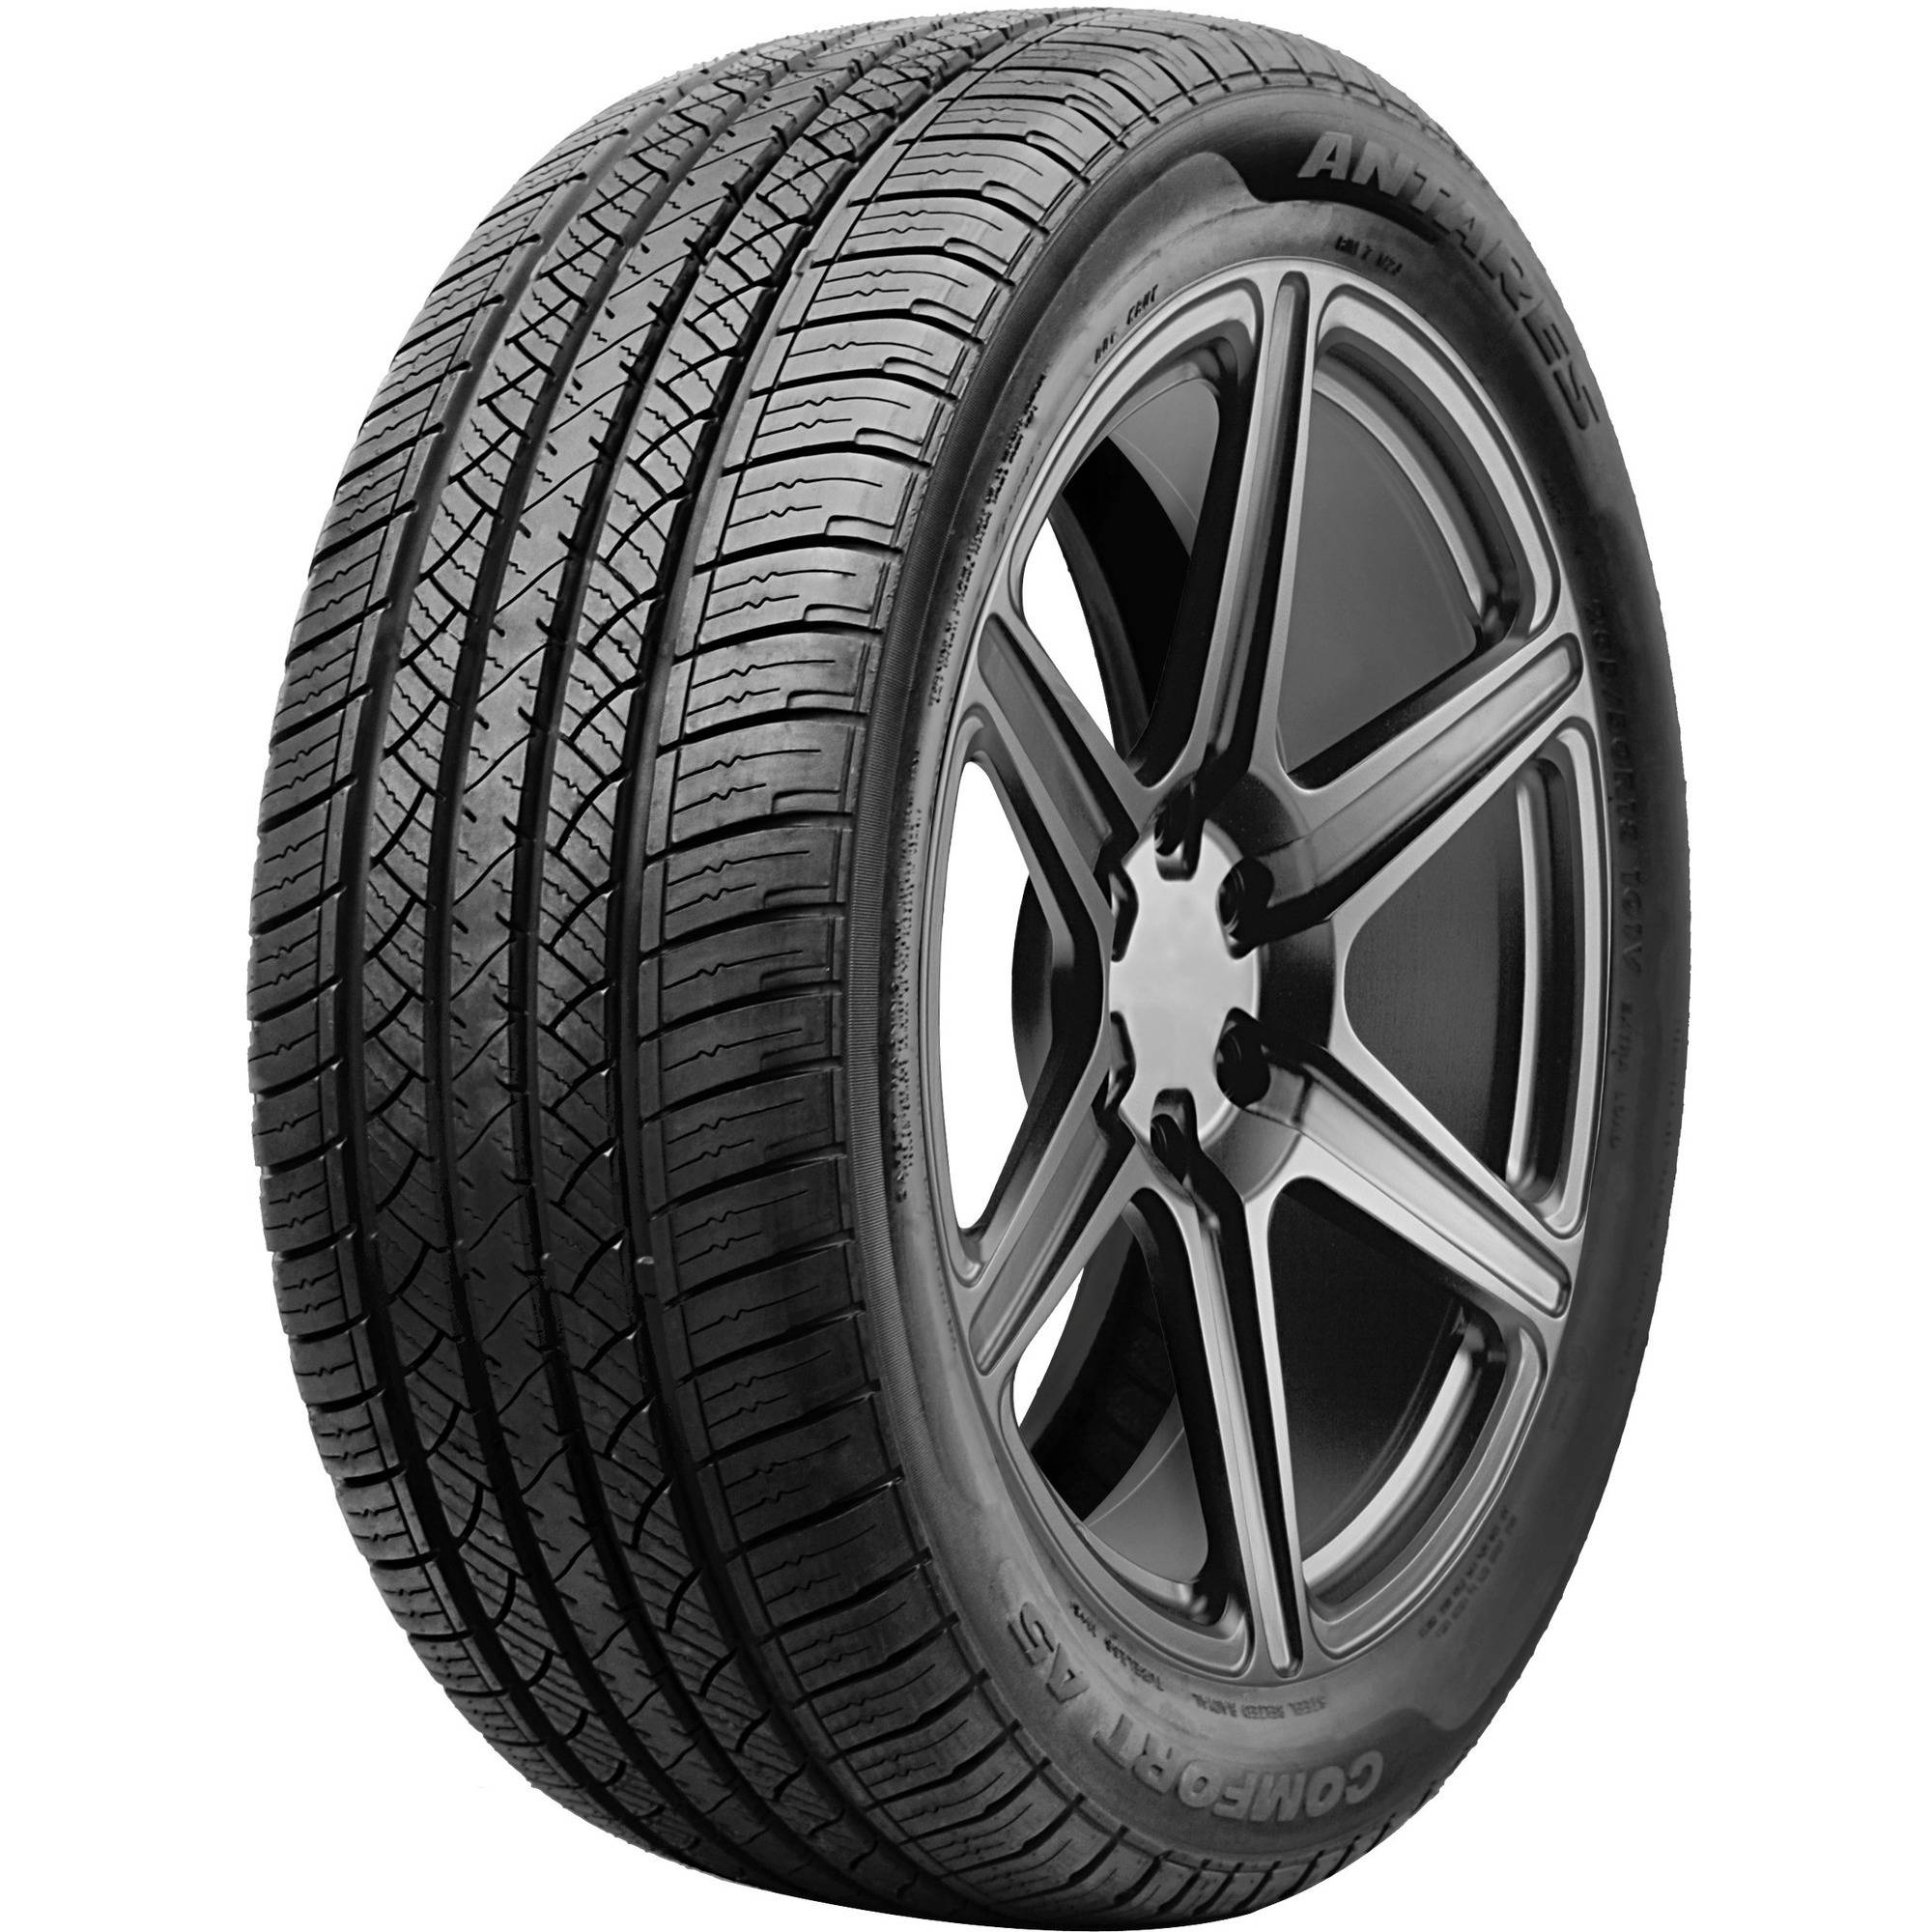 Antares Comfort A5 225/65R16 100H Tire